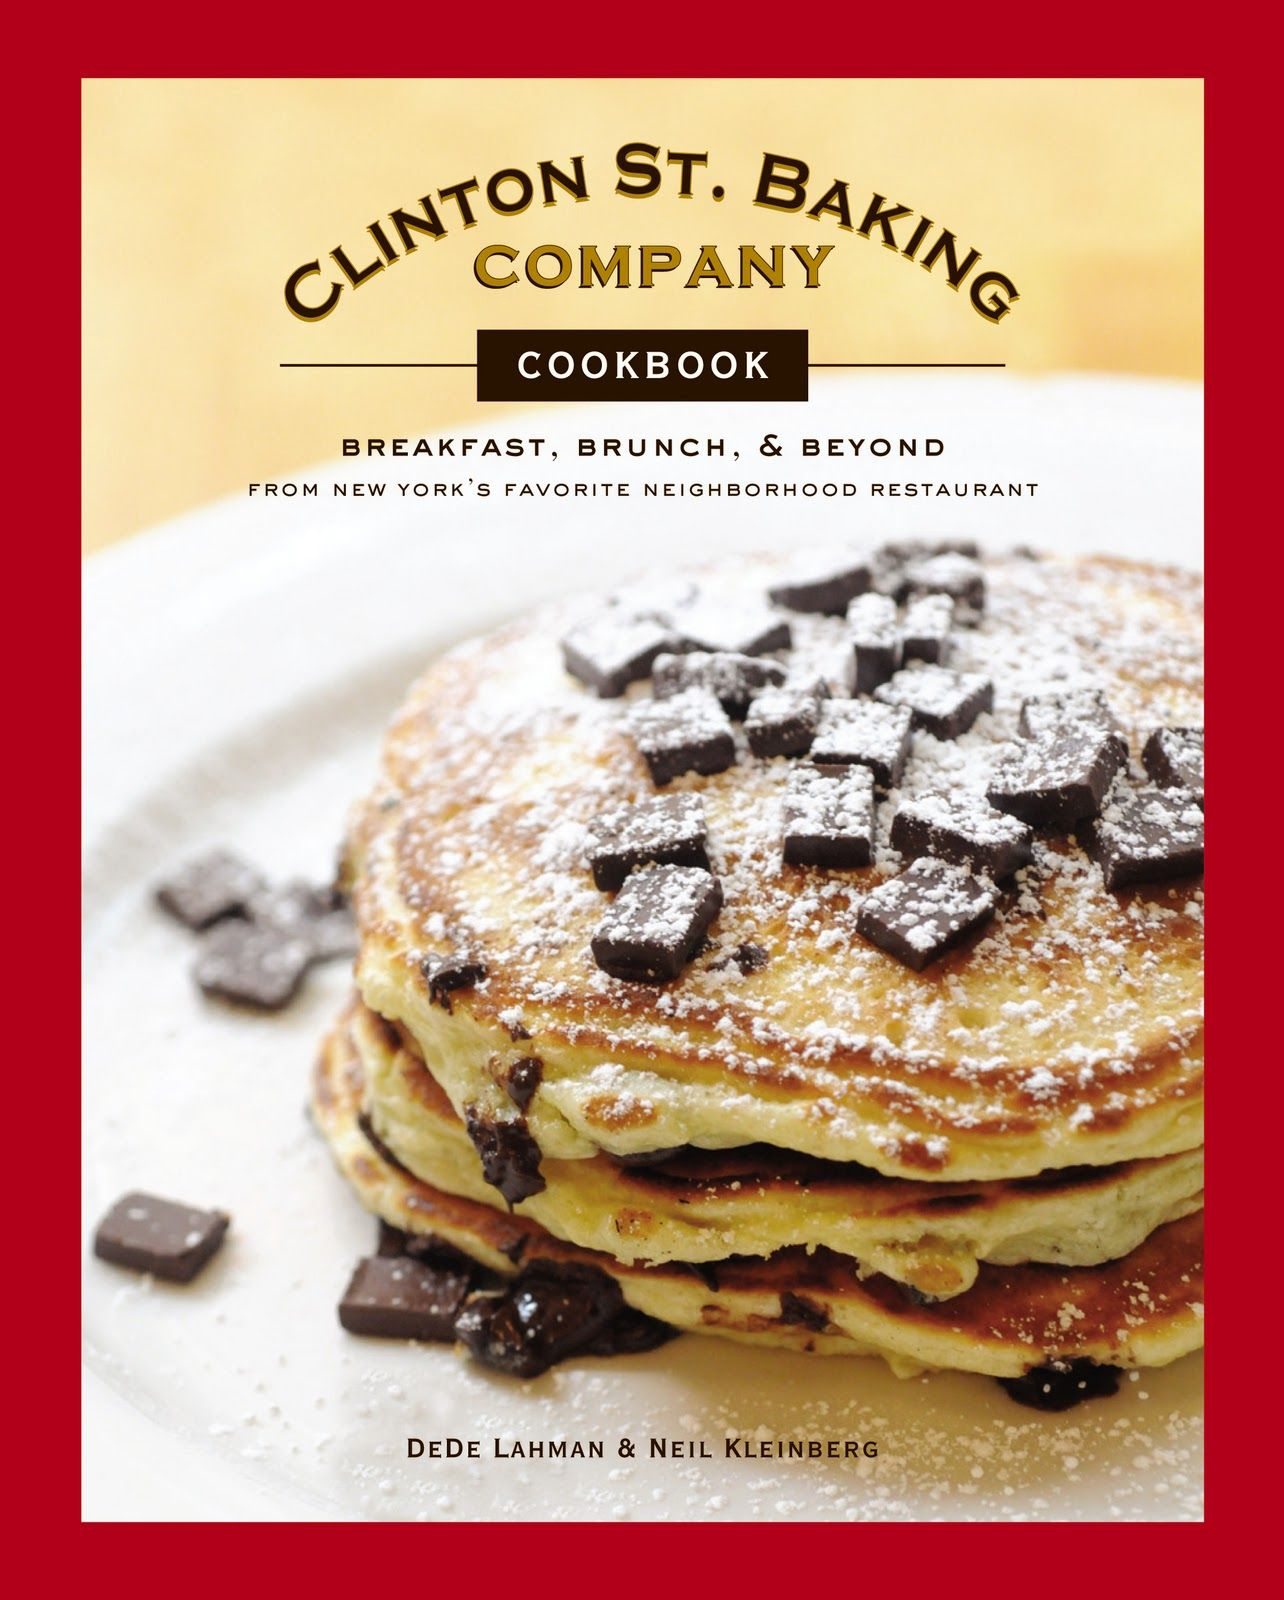 Clinton st baking company cookbook make a better brunch amazing baking company cookbook breakfast brunch beyond from new yorks favorite neighborhood restaurant dede lahman neil kleinberg michael harlan turkell im forumfinder Image collections